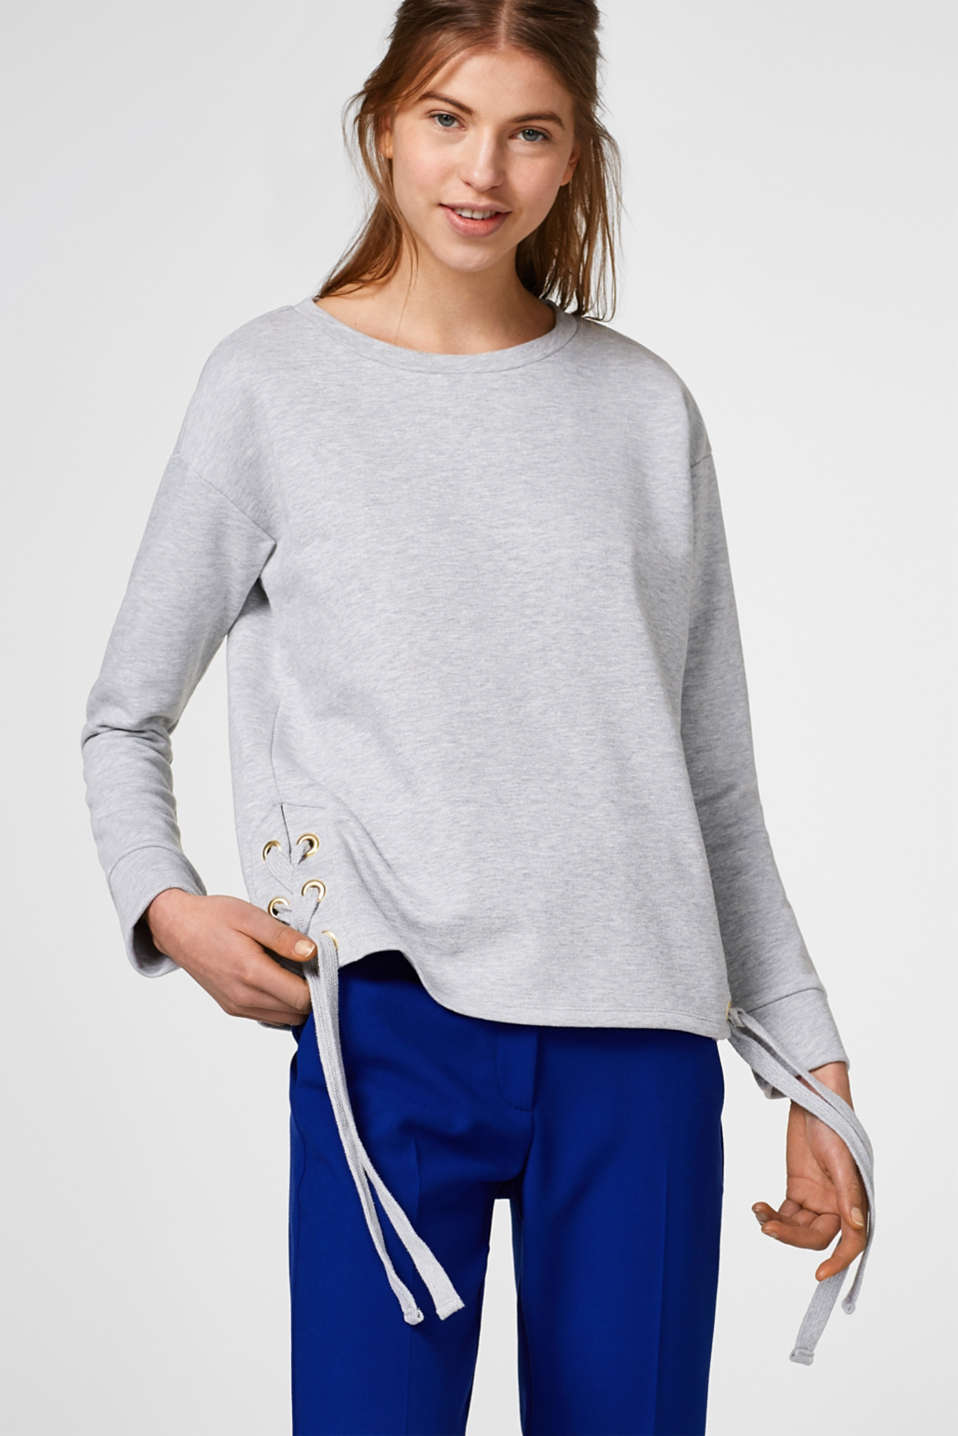 edc - Melange sweatshirt, lace-up details